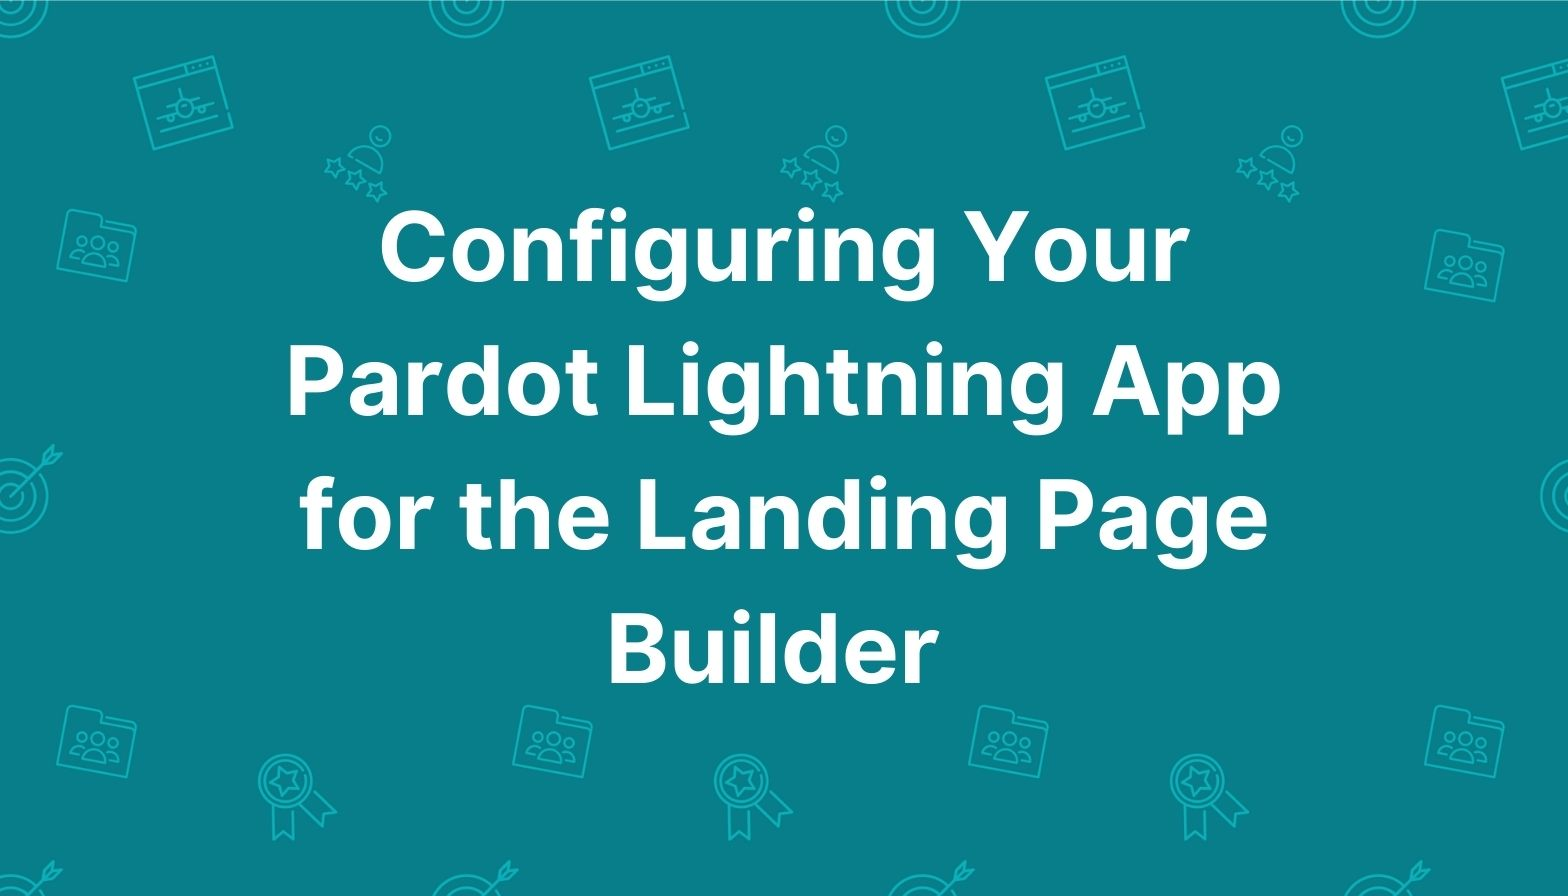 Feature image: Configuring Your Pardot Lightning App for the Landing Page Builder